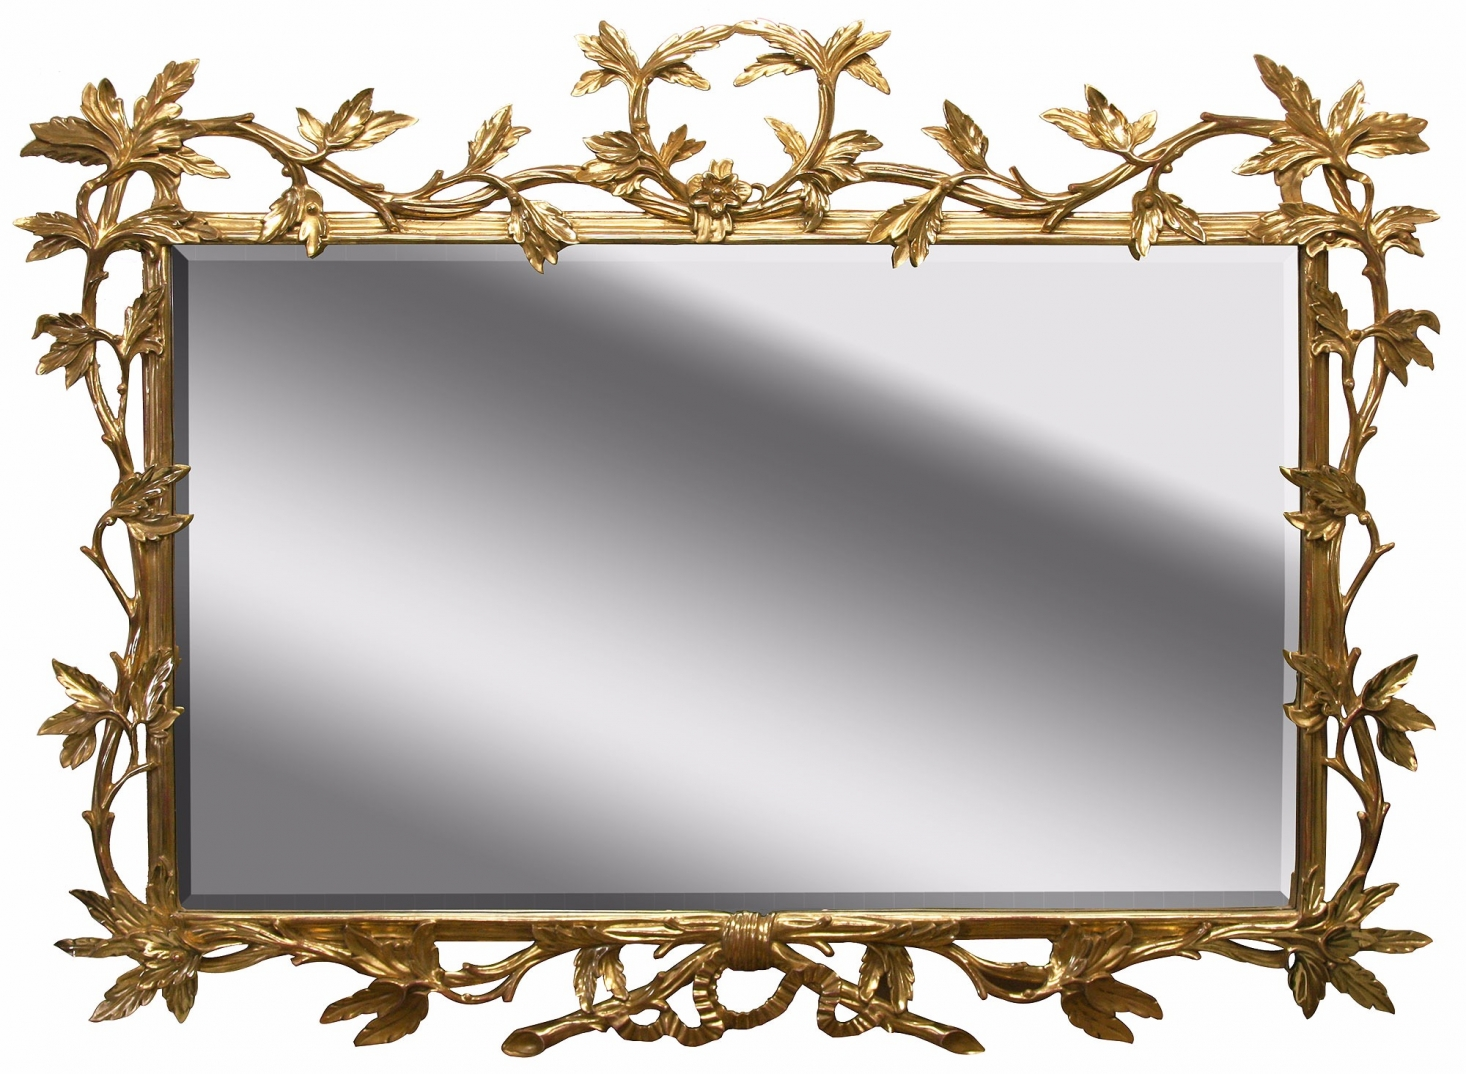 Water gilded Chippendale style landscape mirror